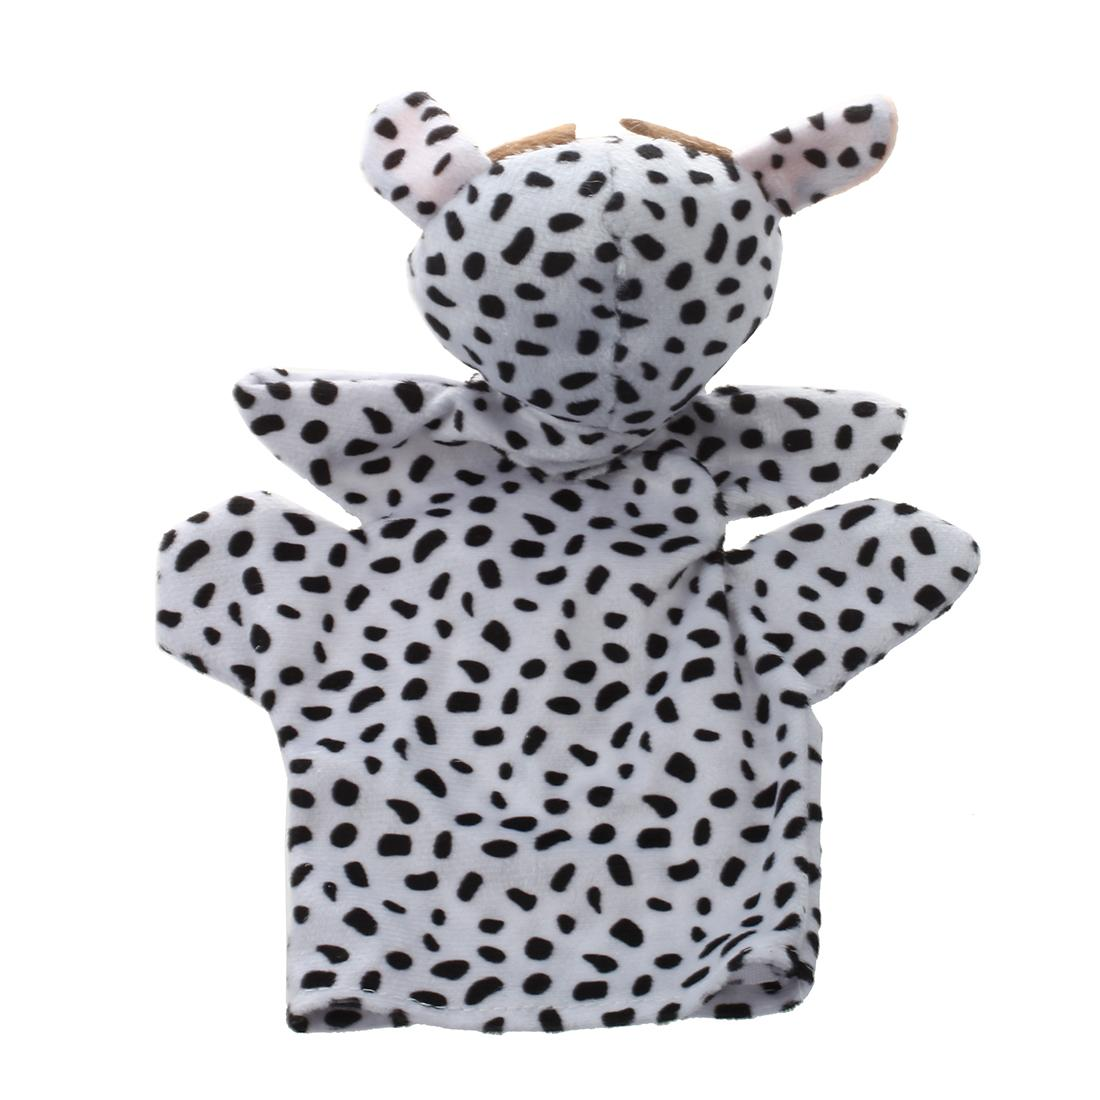 Cute Baby Child Zoo Farm Animal Hand Sock Glove Puppet Finger Sack Plush Toy NewModel:Cow